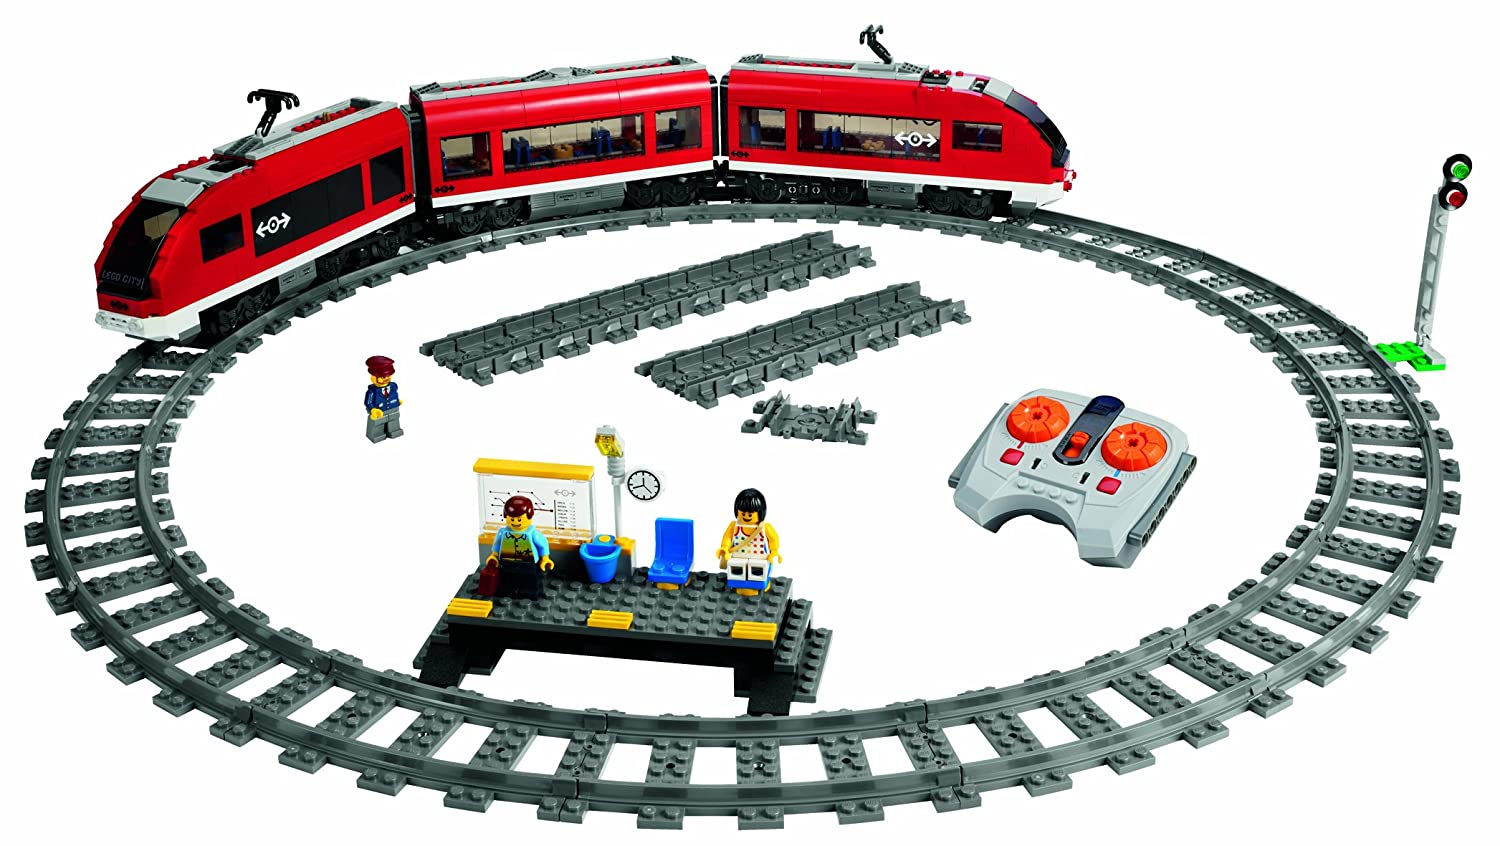 Like LEGO Trains?